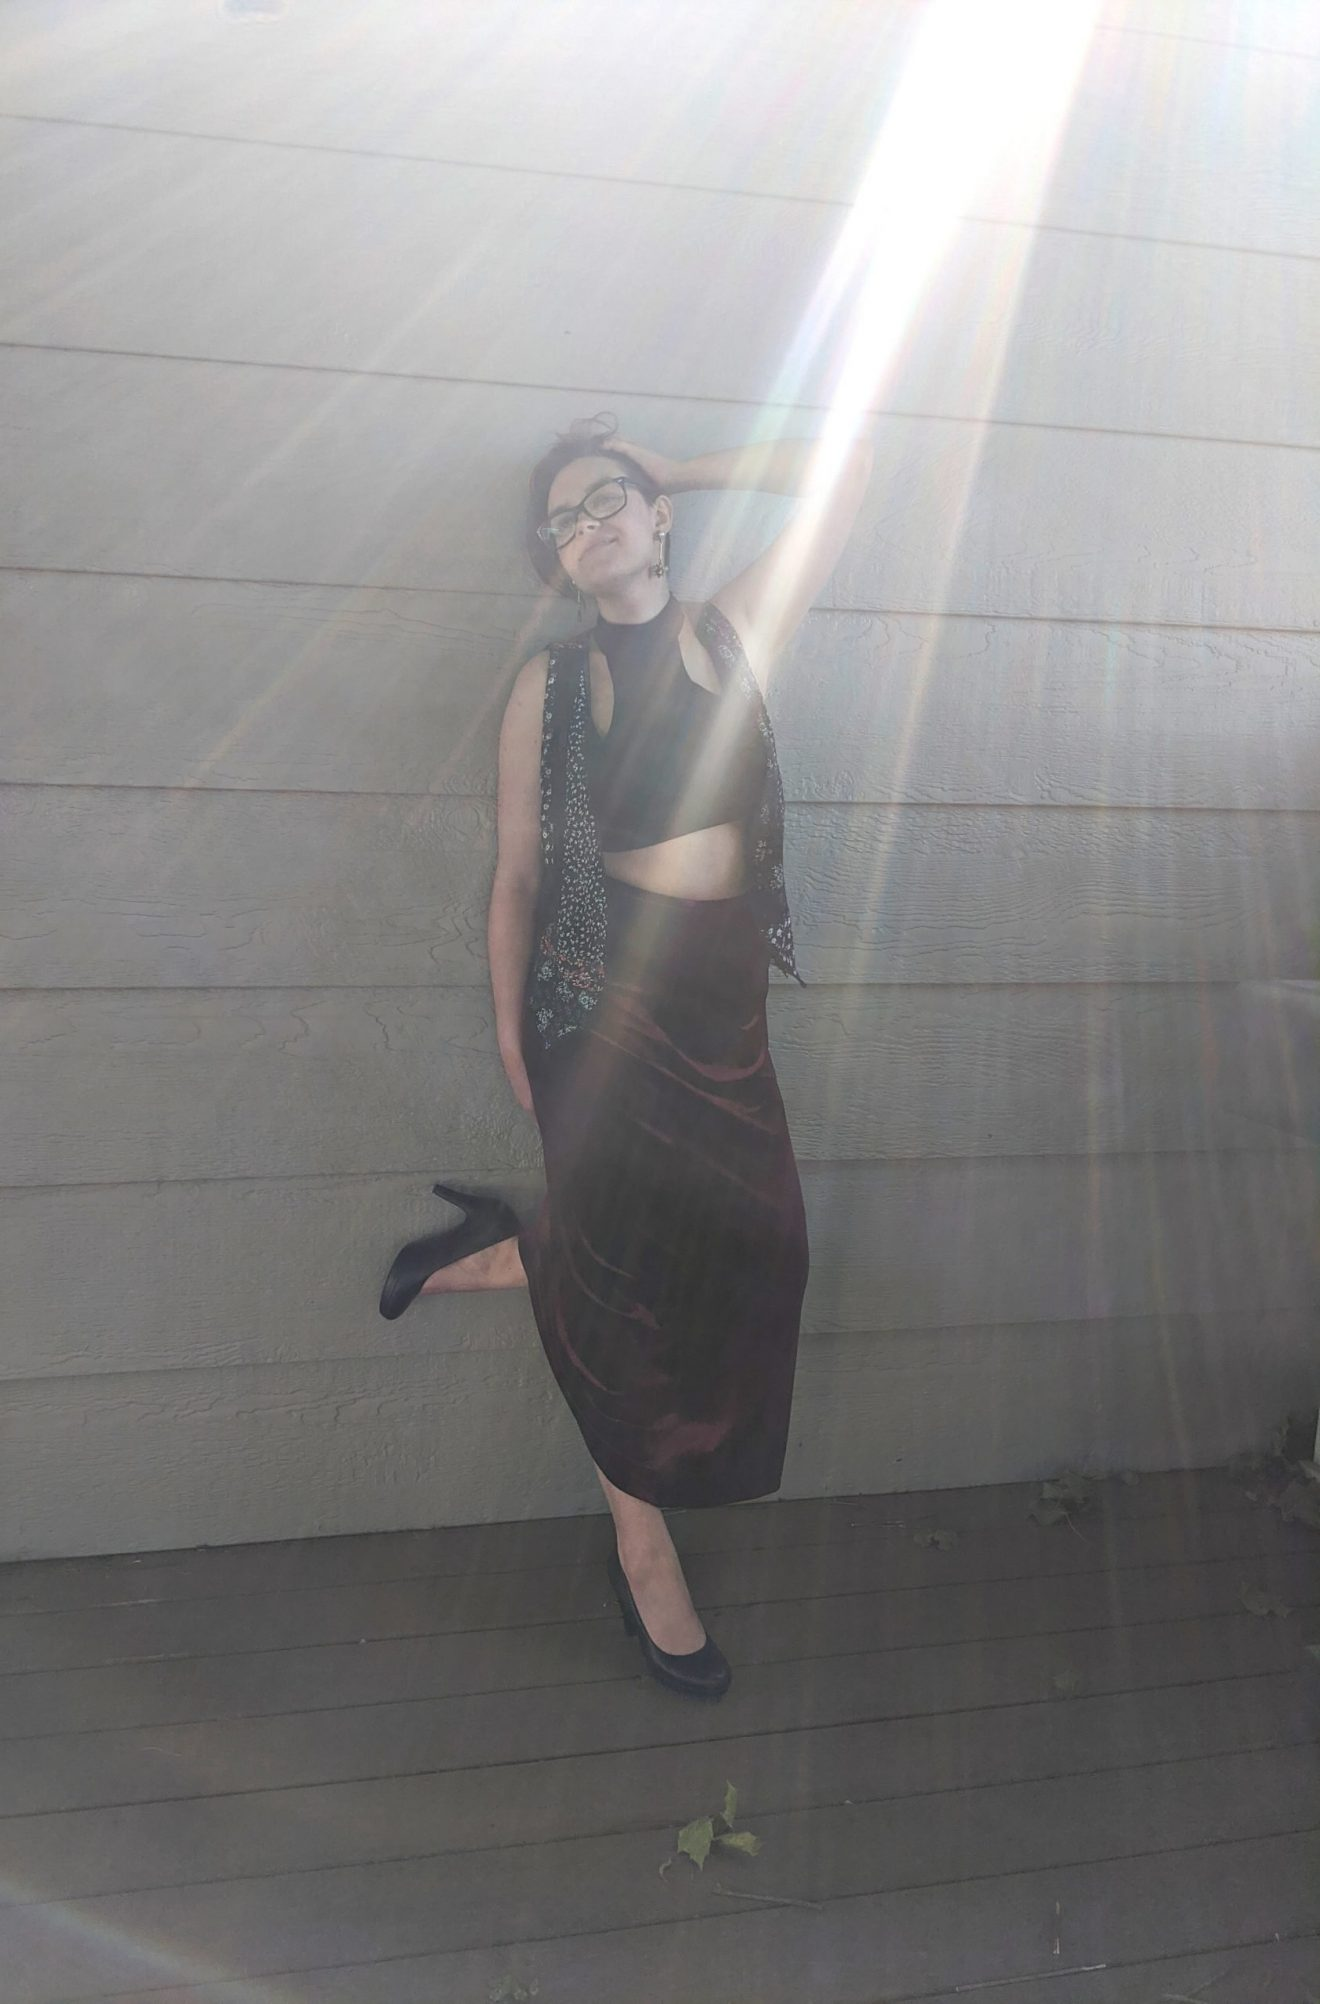 I Feared Waking Up Alissa Ackerman Story Behind The Cloth fashion blog vintage antique witchy bohemian outfit 34 scaled